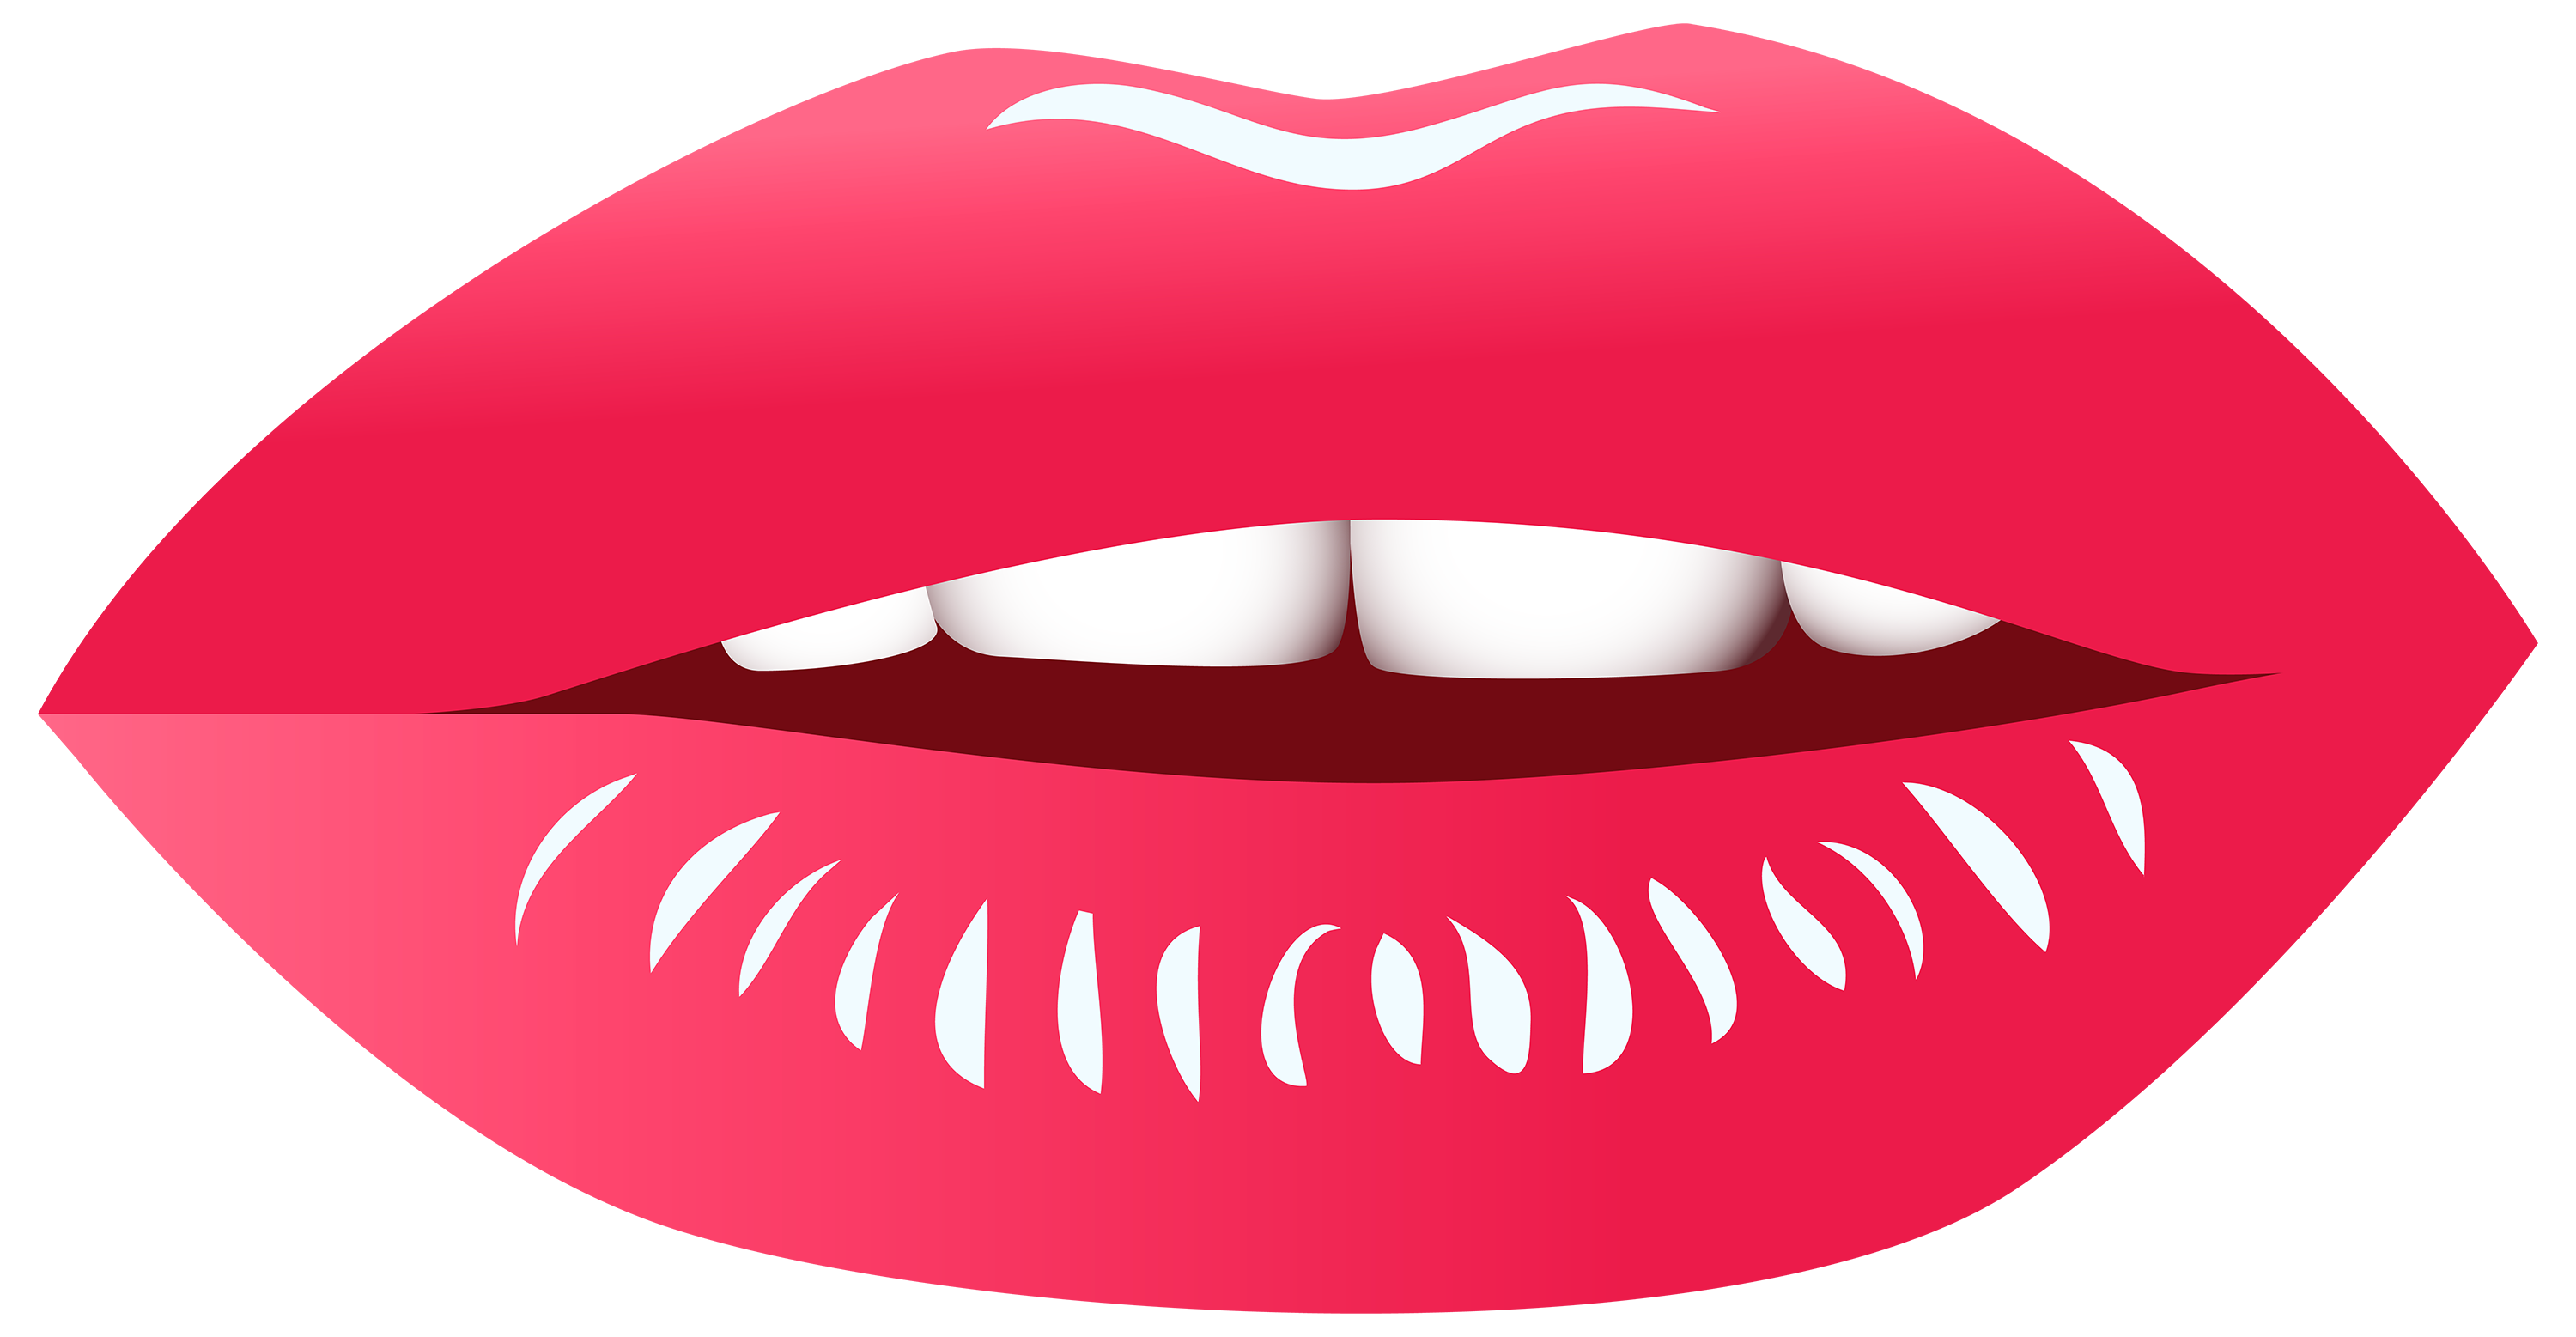 Mouth clip art free clipart images.